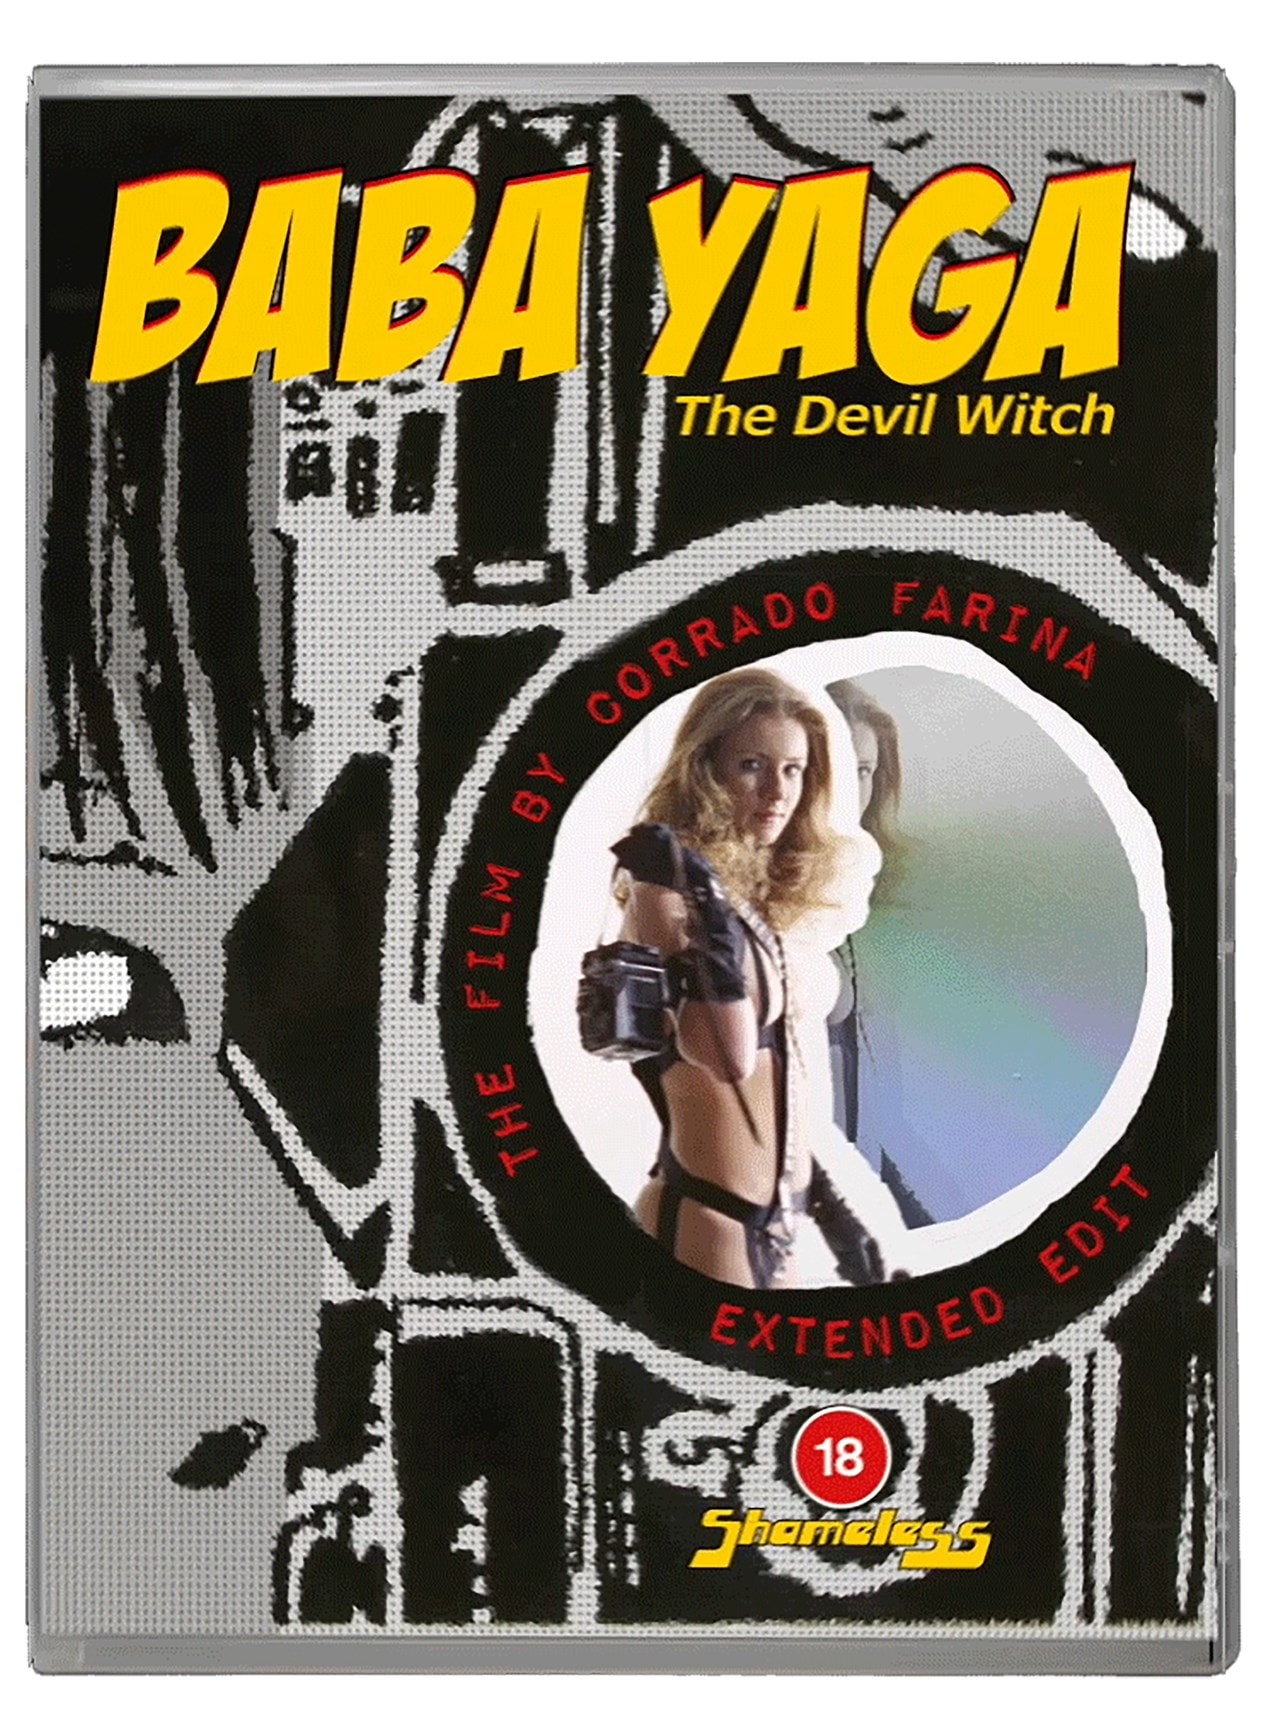 Baba Yaga - The Devil Witch - 1